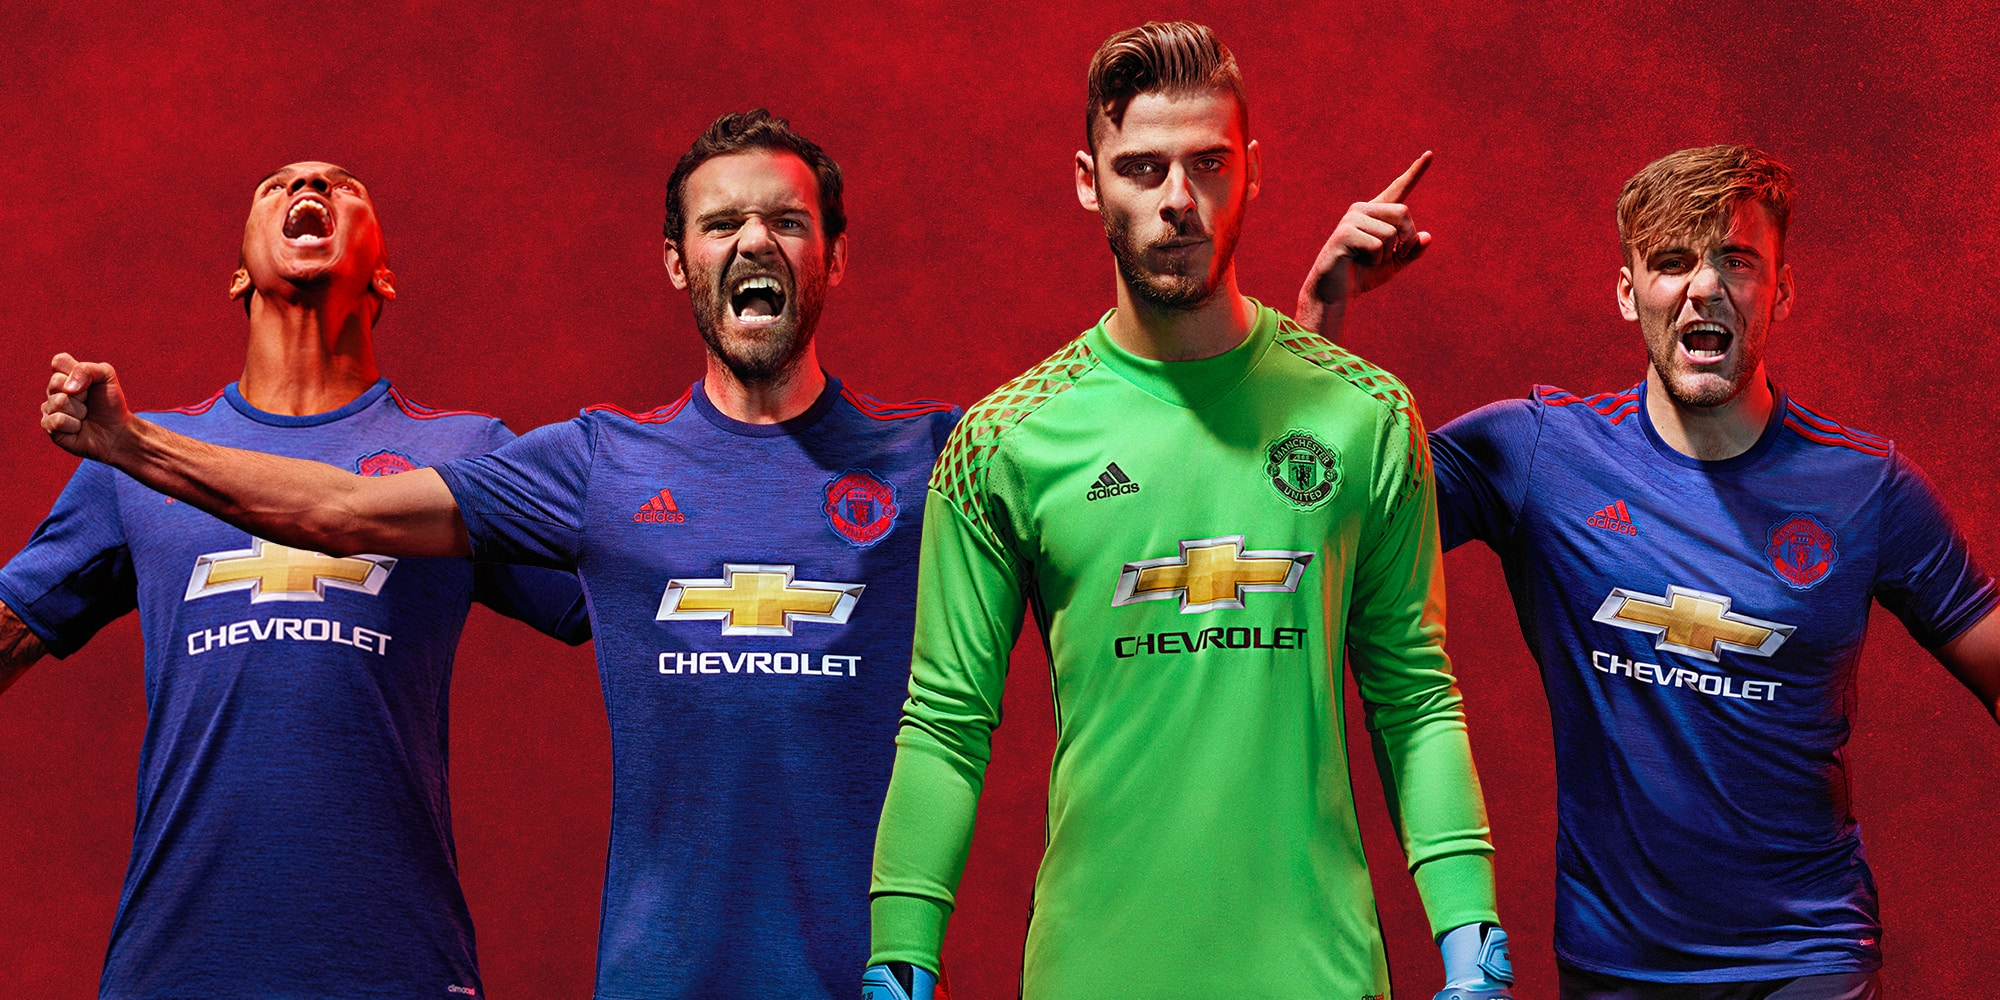 maillot-exterieur-manchester-united-2016-2017-adidas